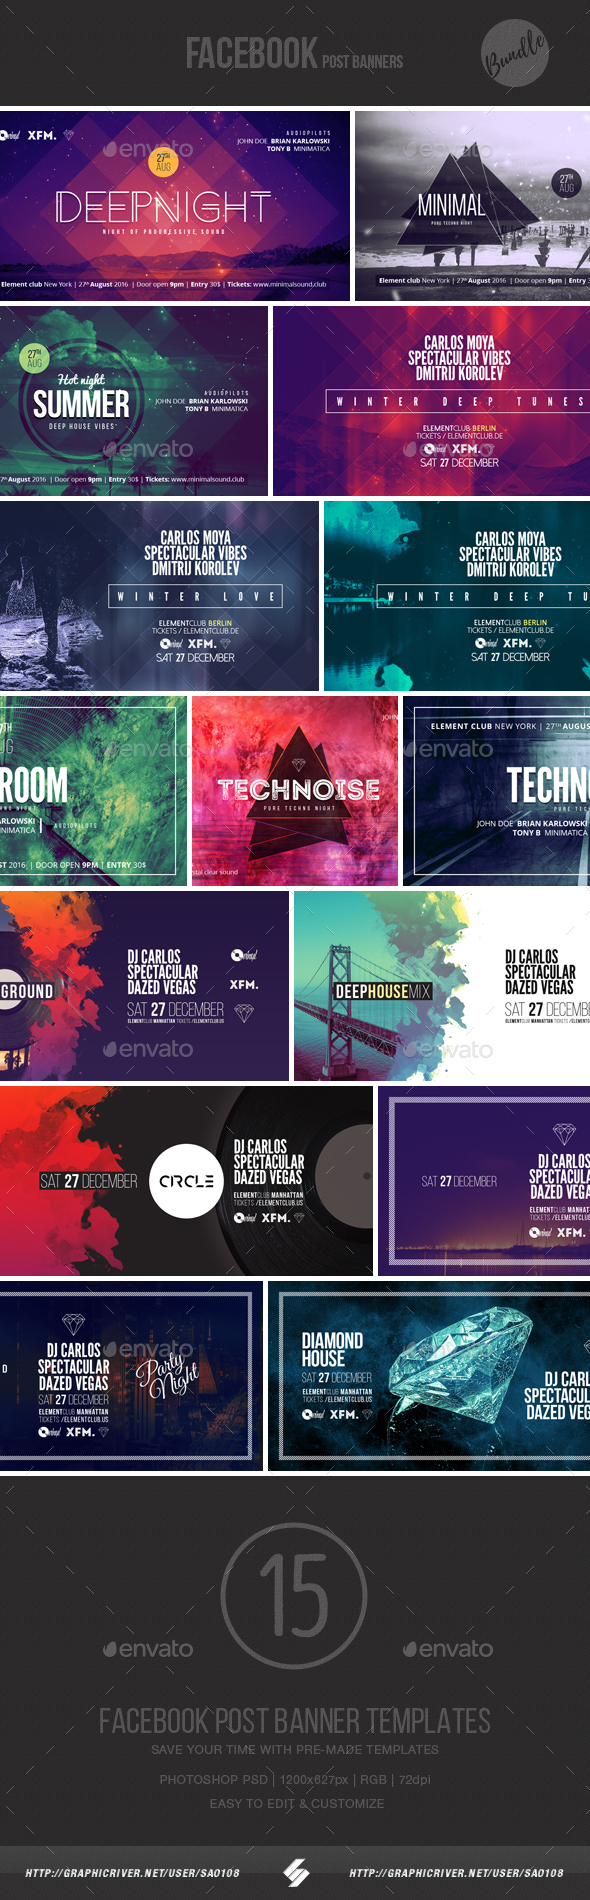 Electronic Music Event Facebook Post Banner Templates Bundle By Sao - Facebook posting schedule template